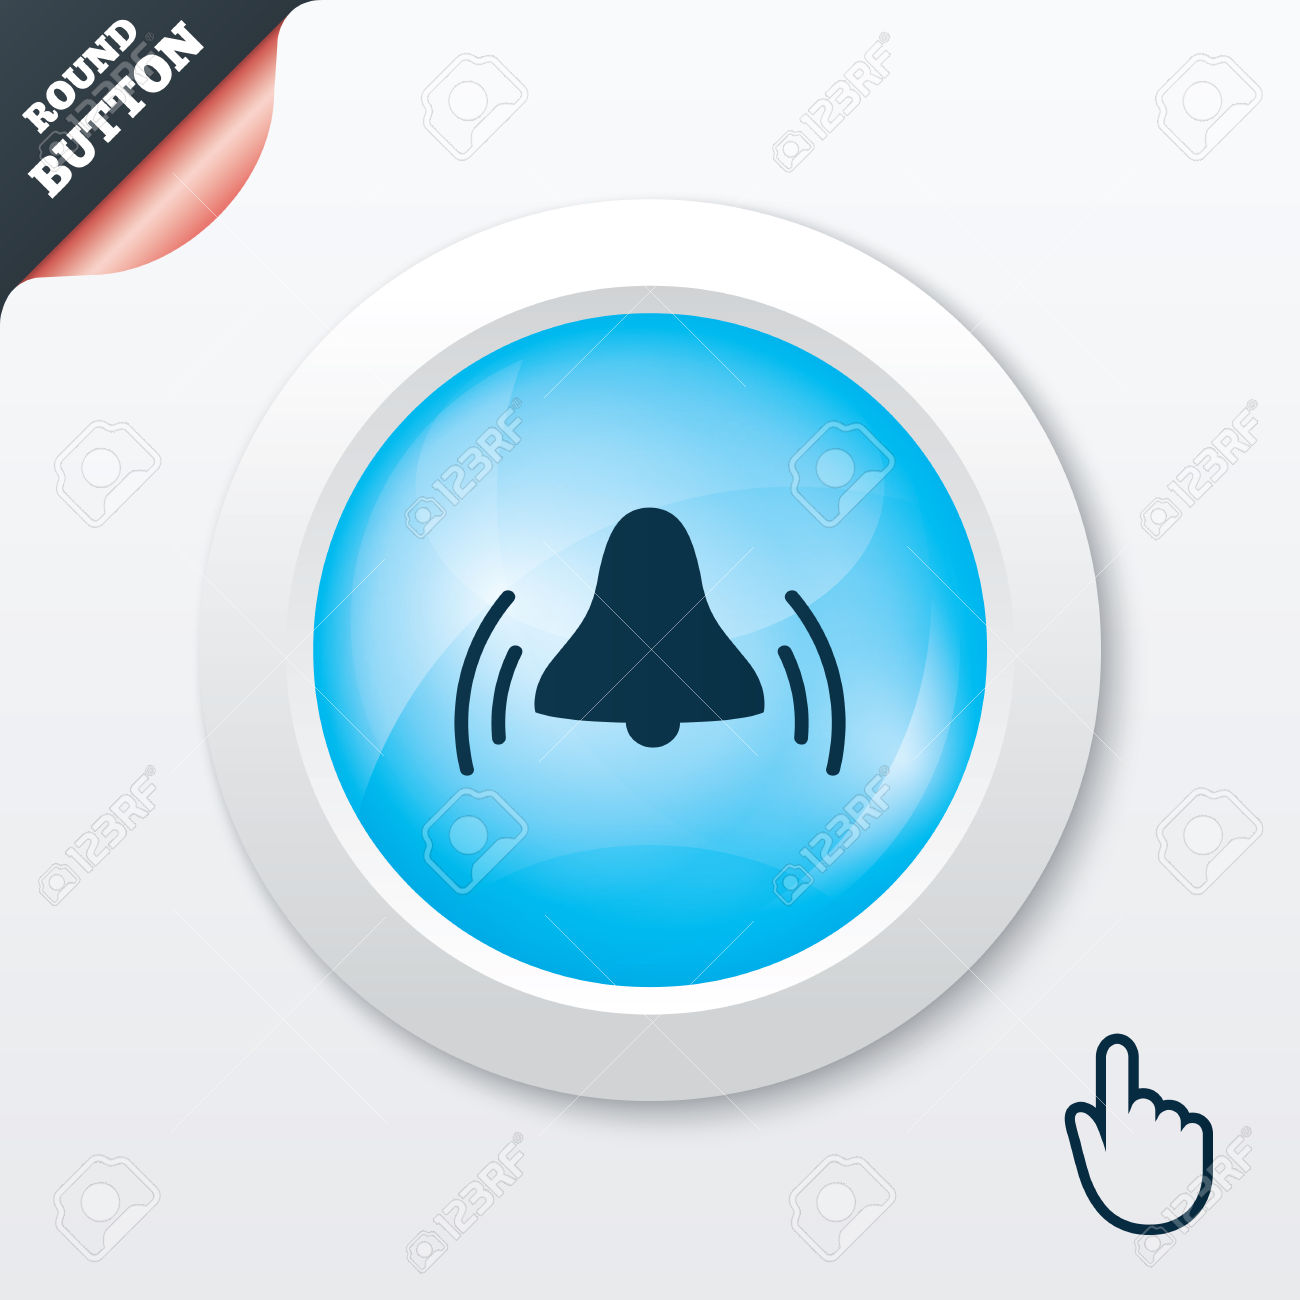 Alarm Bell Sign Icon. Wake Up Alarm Symbol. Blue Shiny Button.